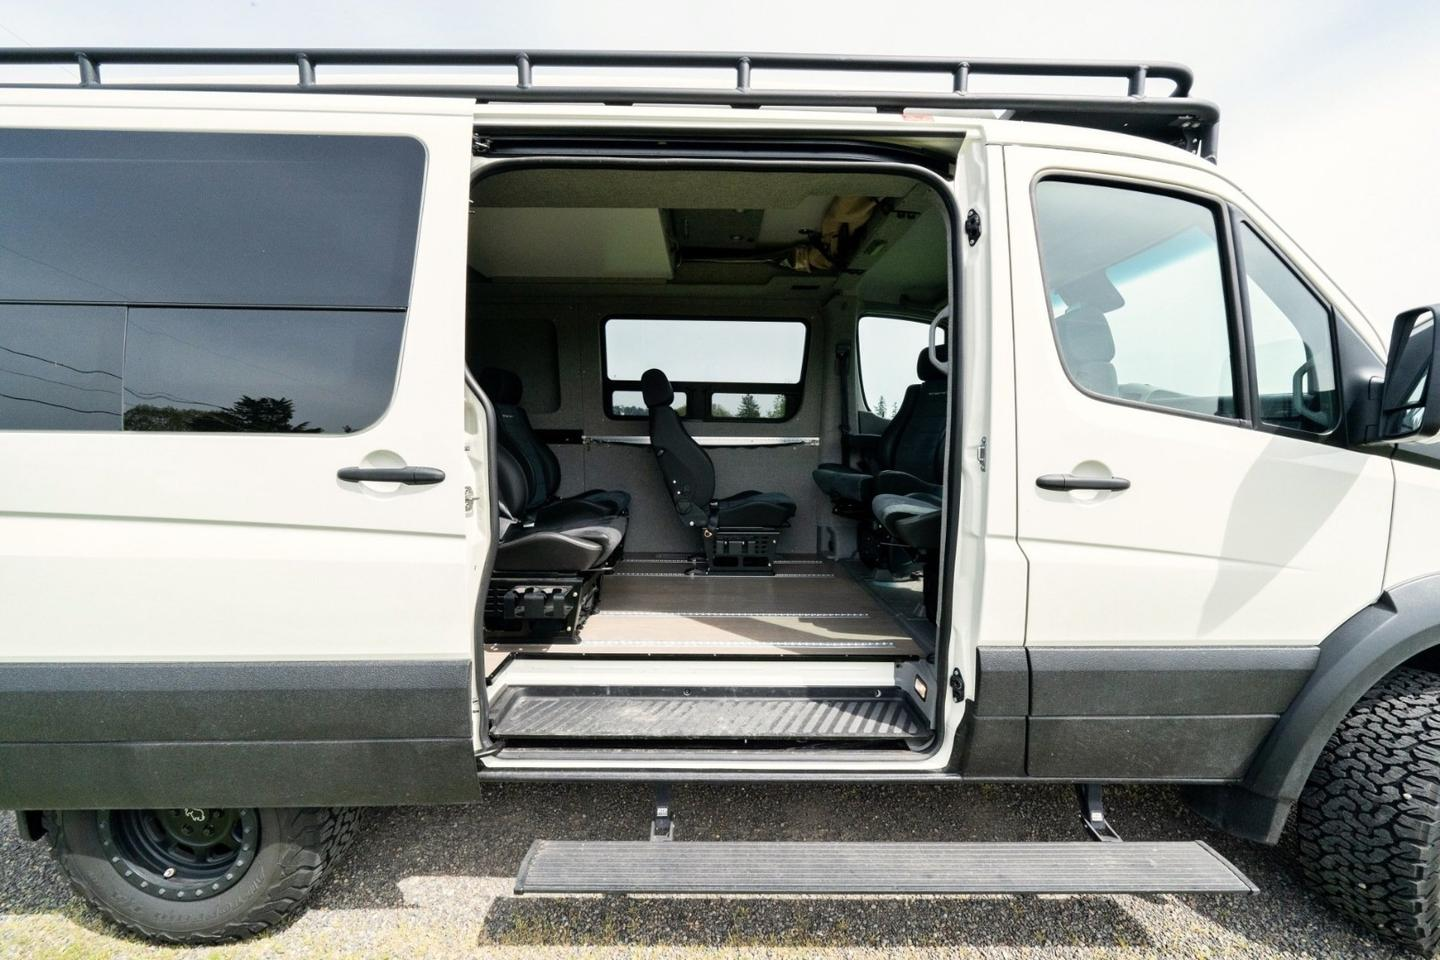 A different sytle of camper van, the Benchmark Swiss Army Sprinter features a lot of exterior upgrading with a simple sleeper interior that seats five